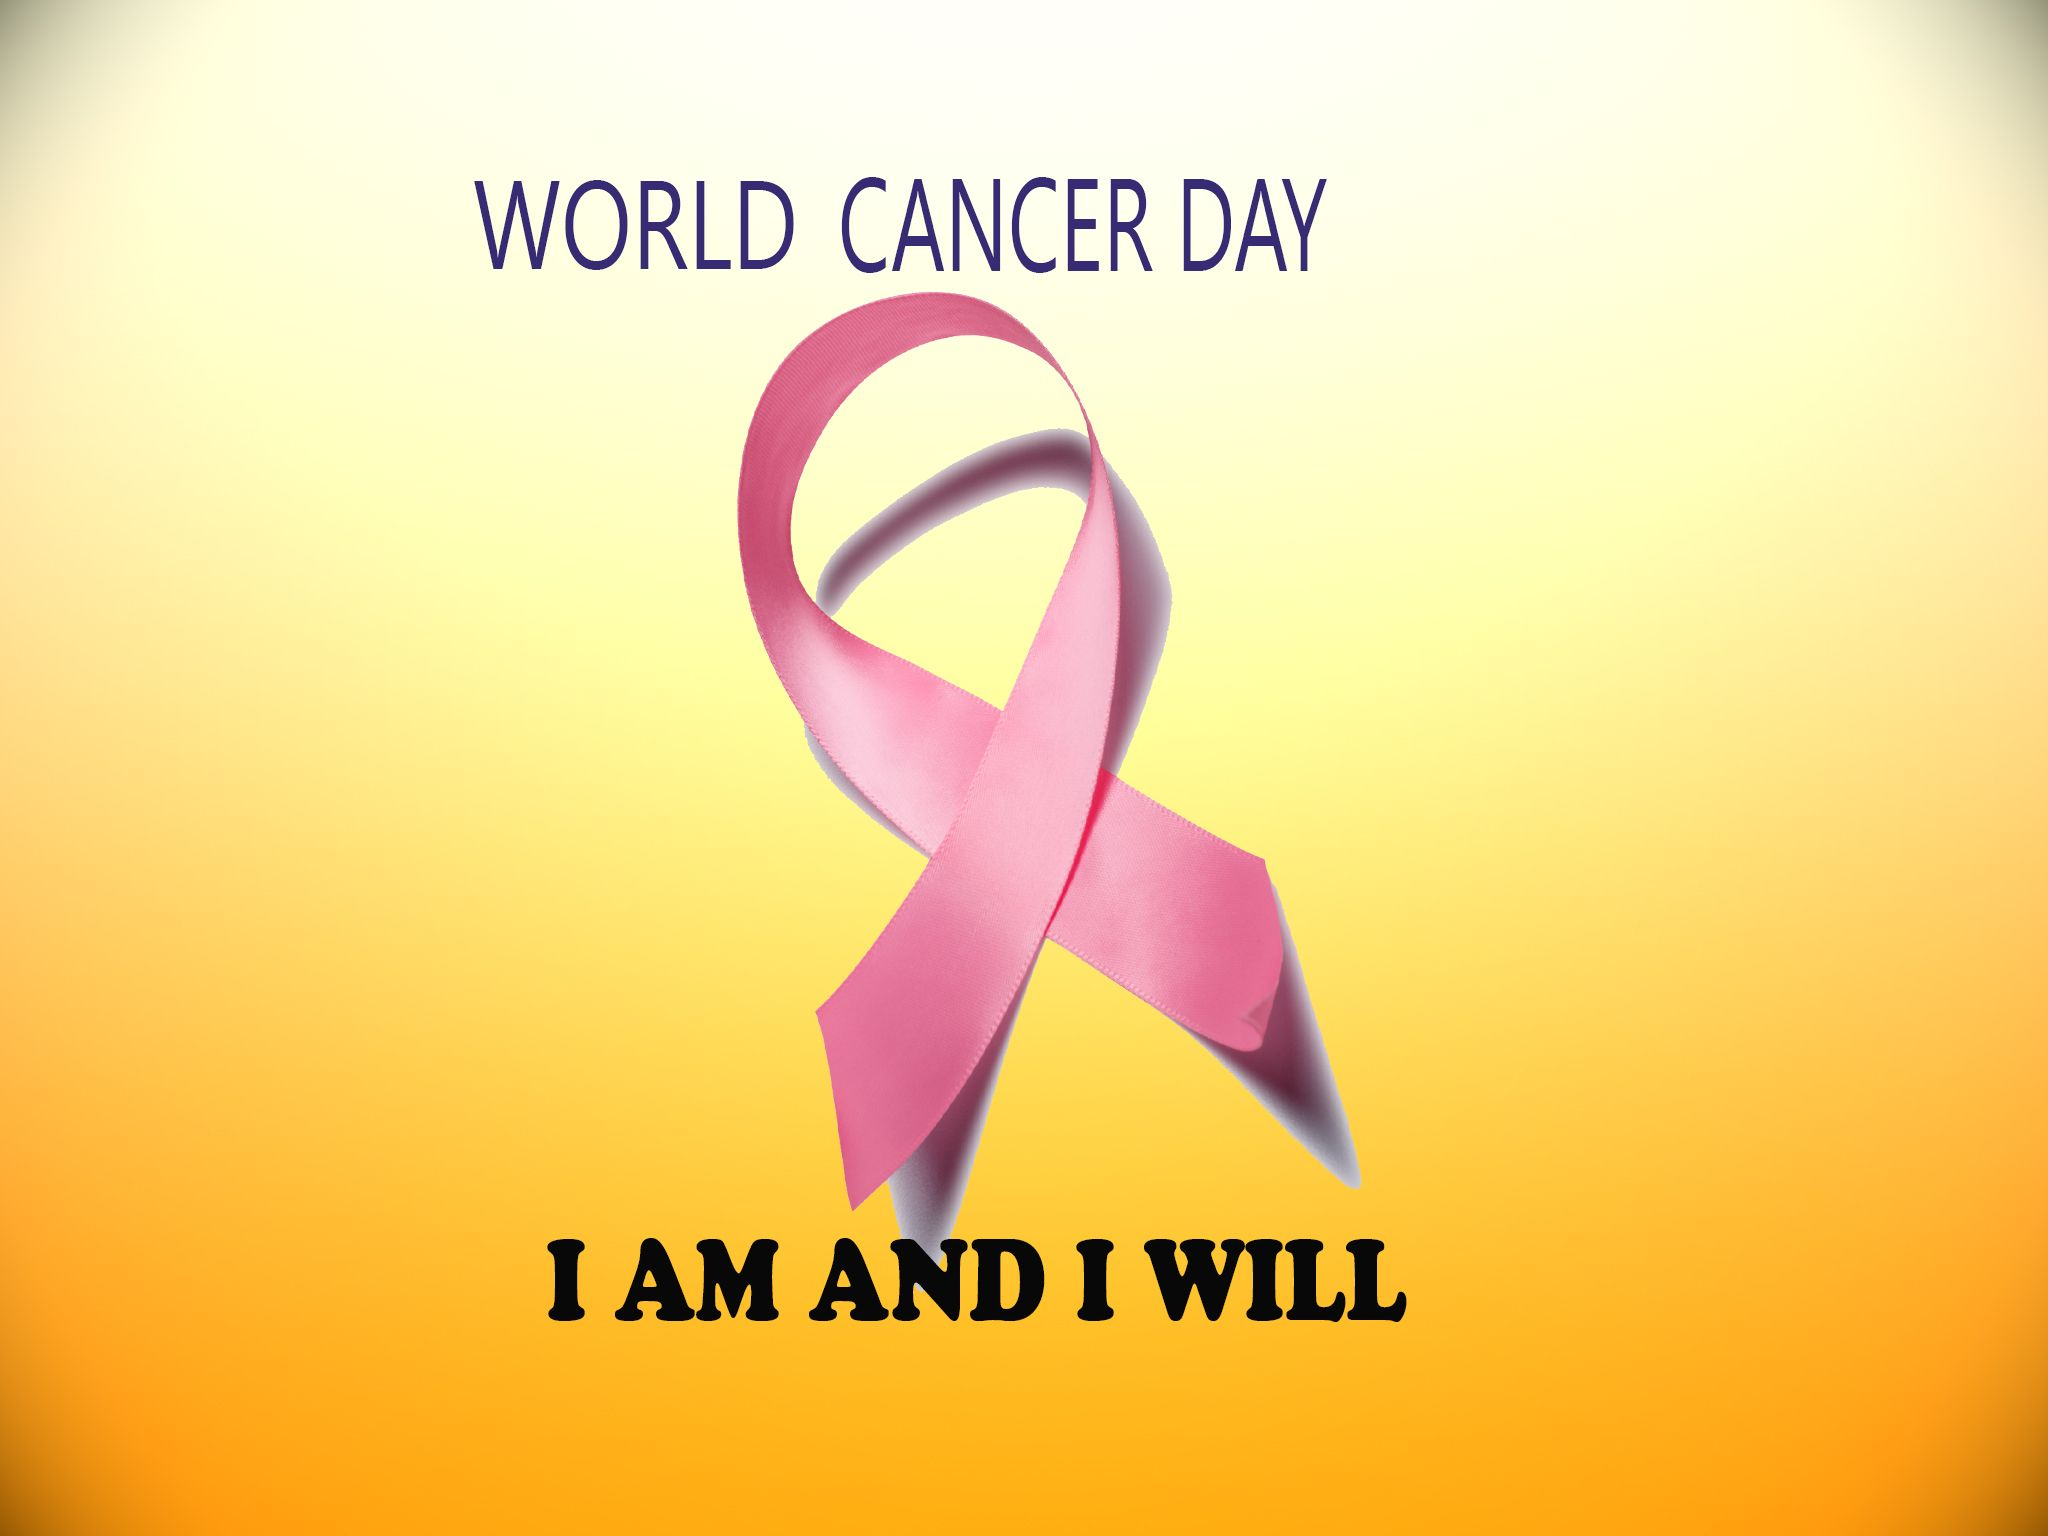 World Cancer Day 2019 Quotes | holiday 2019 | World cancer